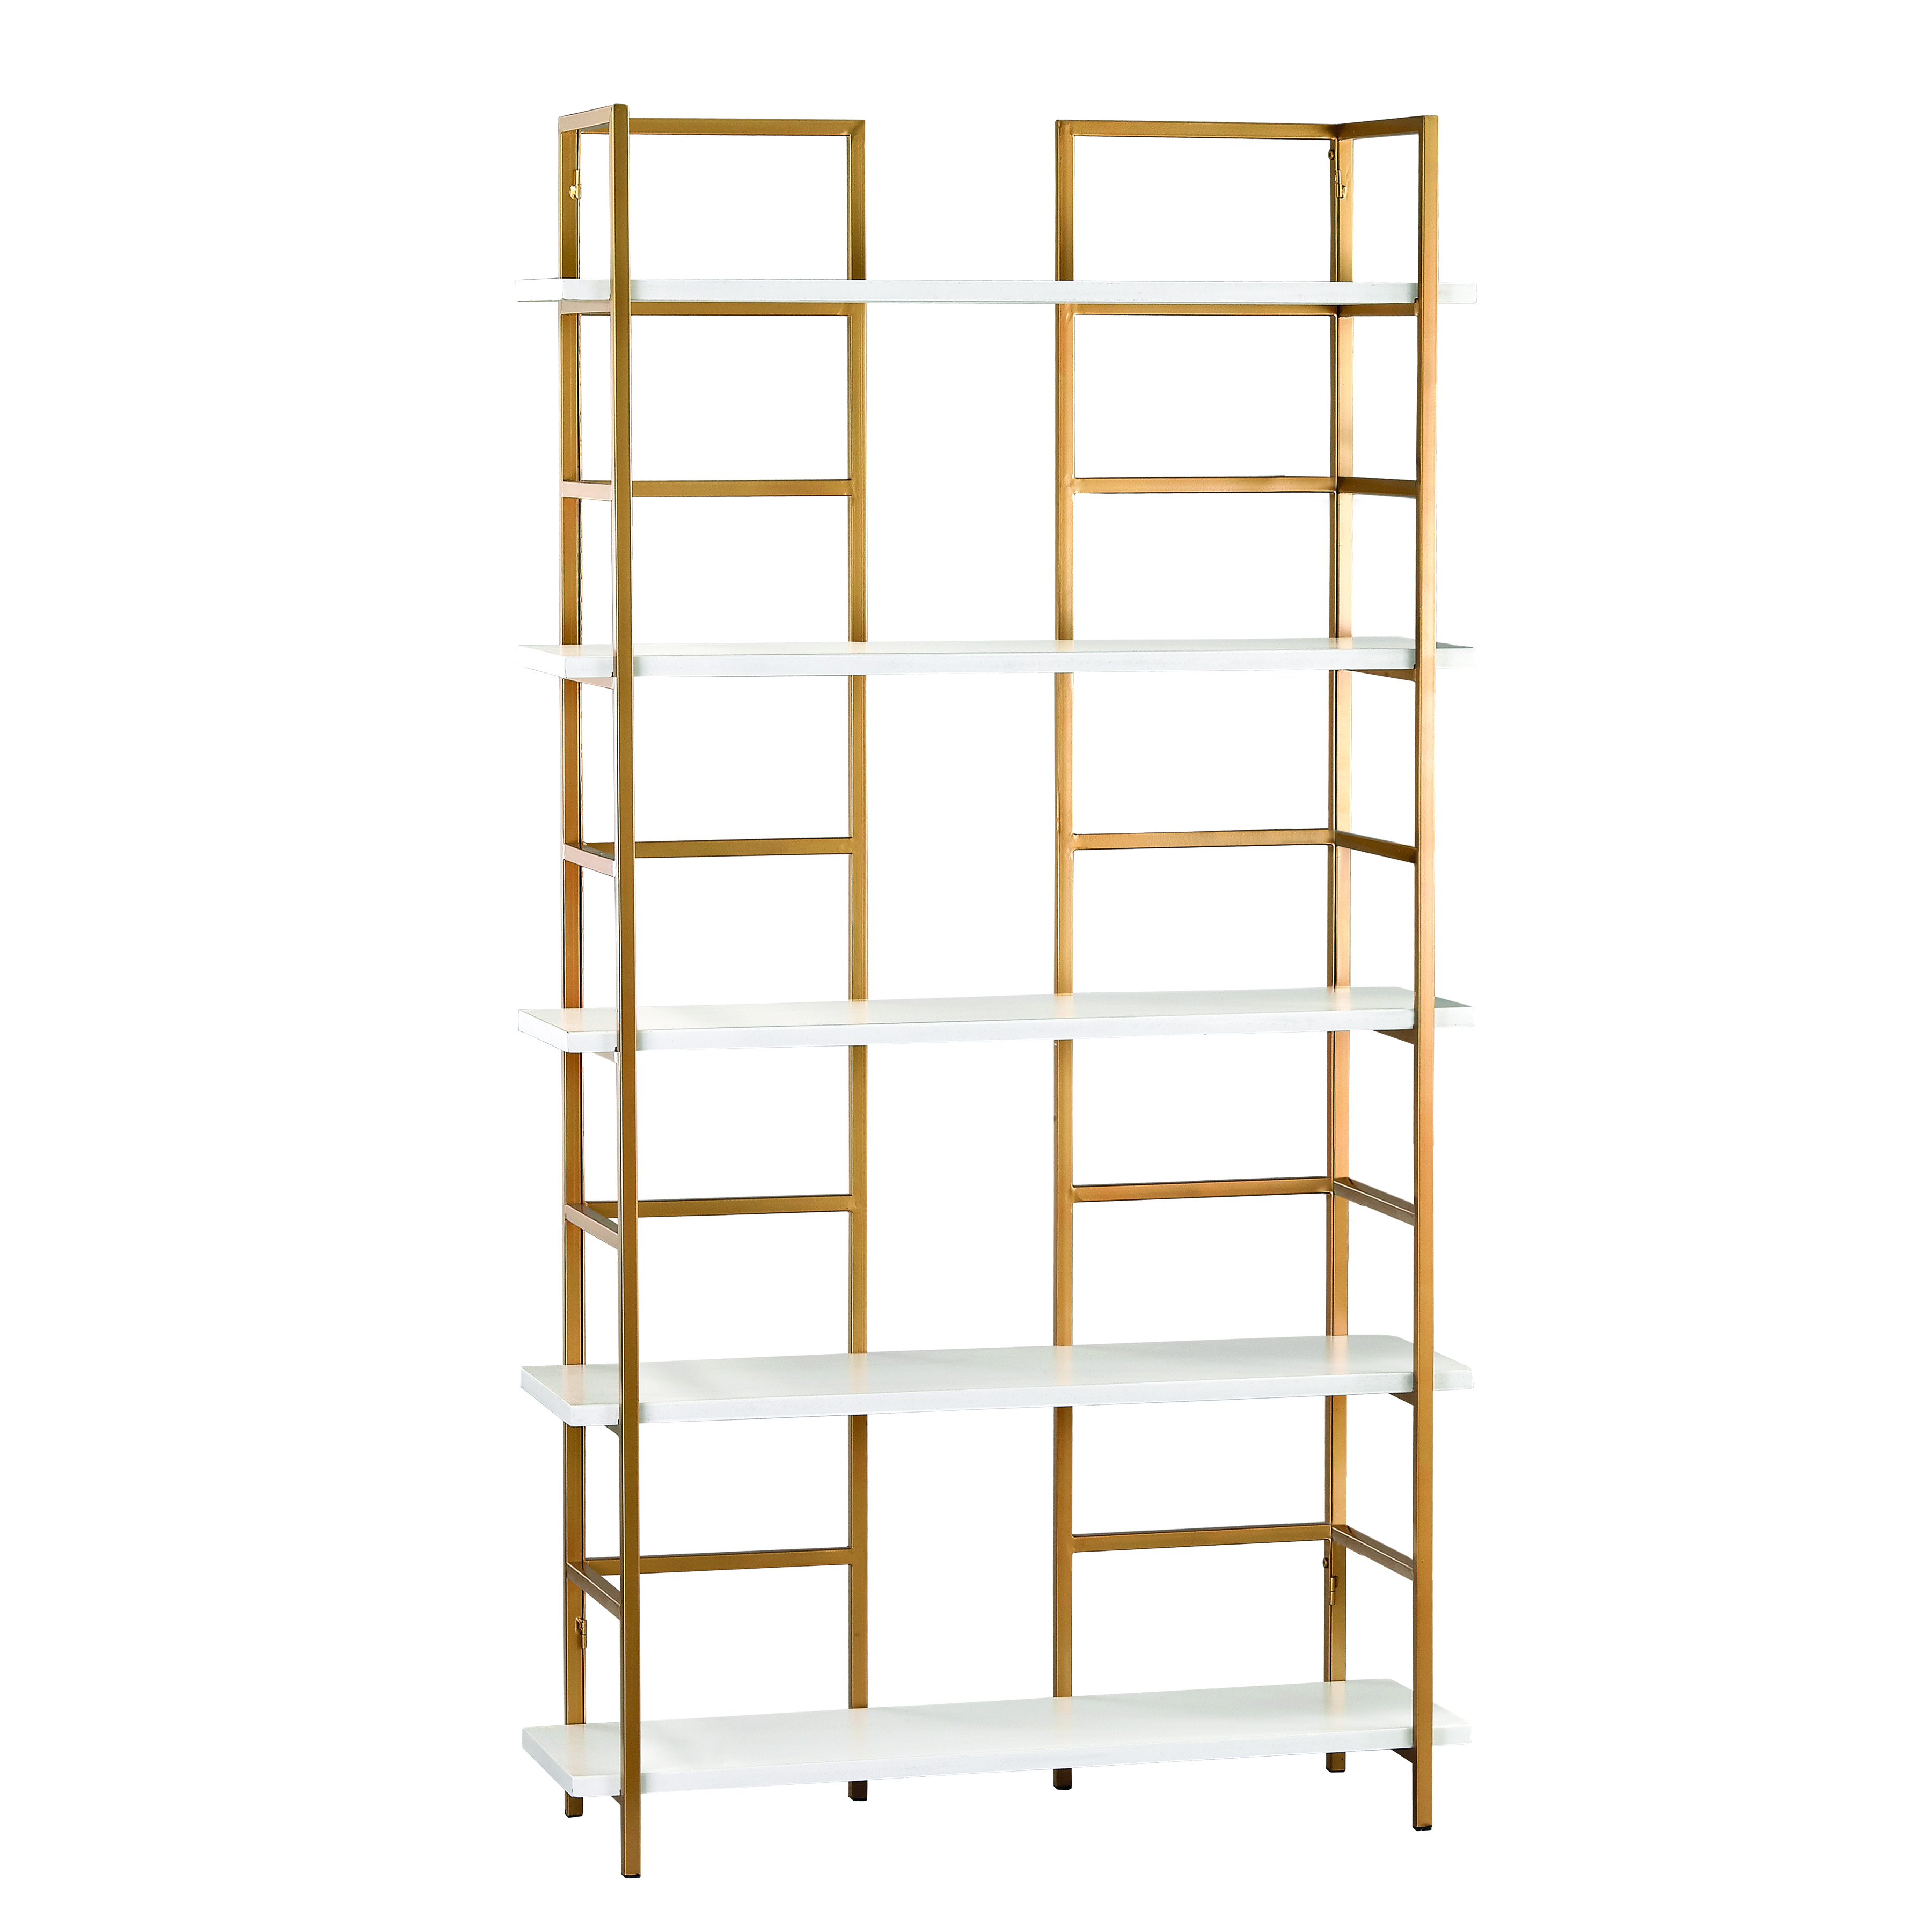 Kline Shelving Unit in White And Gold 351-10204 | ELK Home